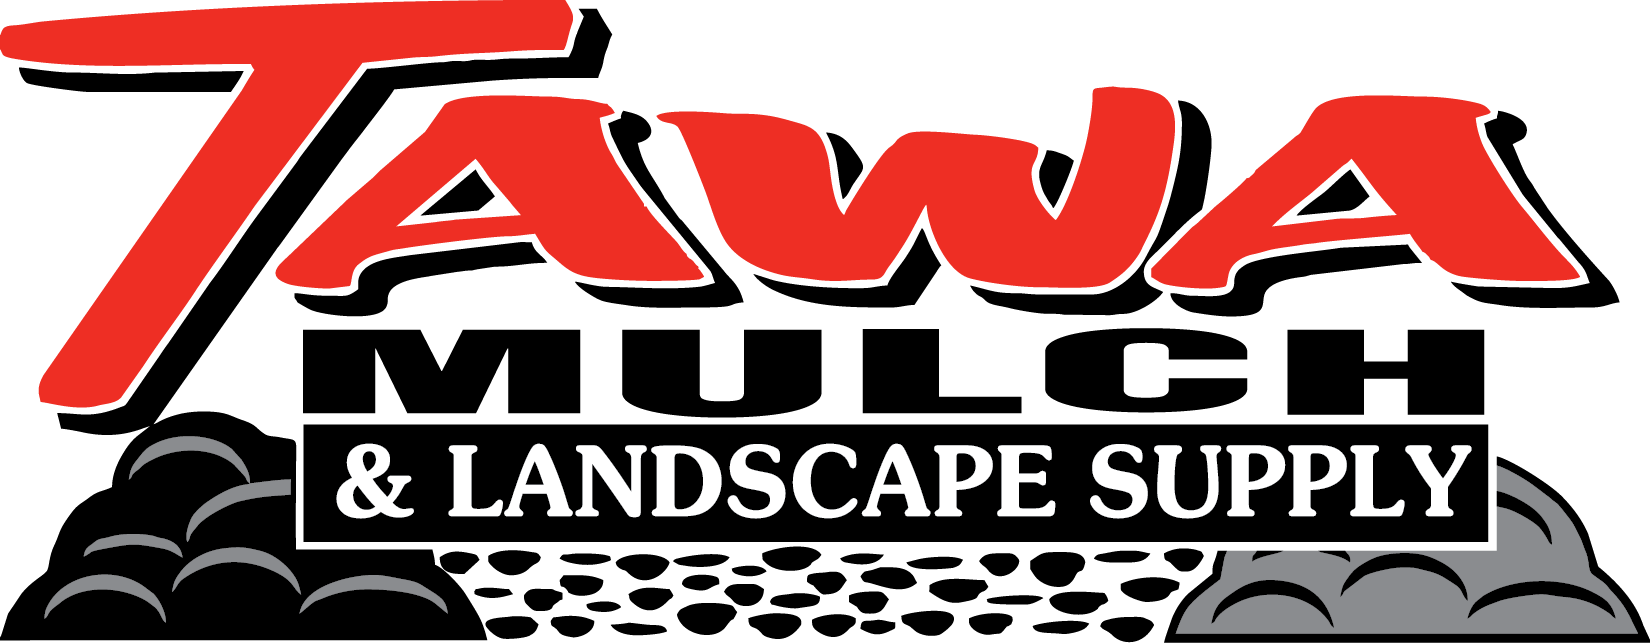 Tawa Mulch & Landscape Supply